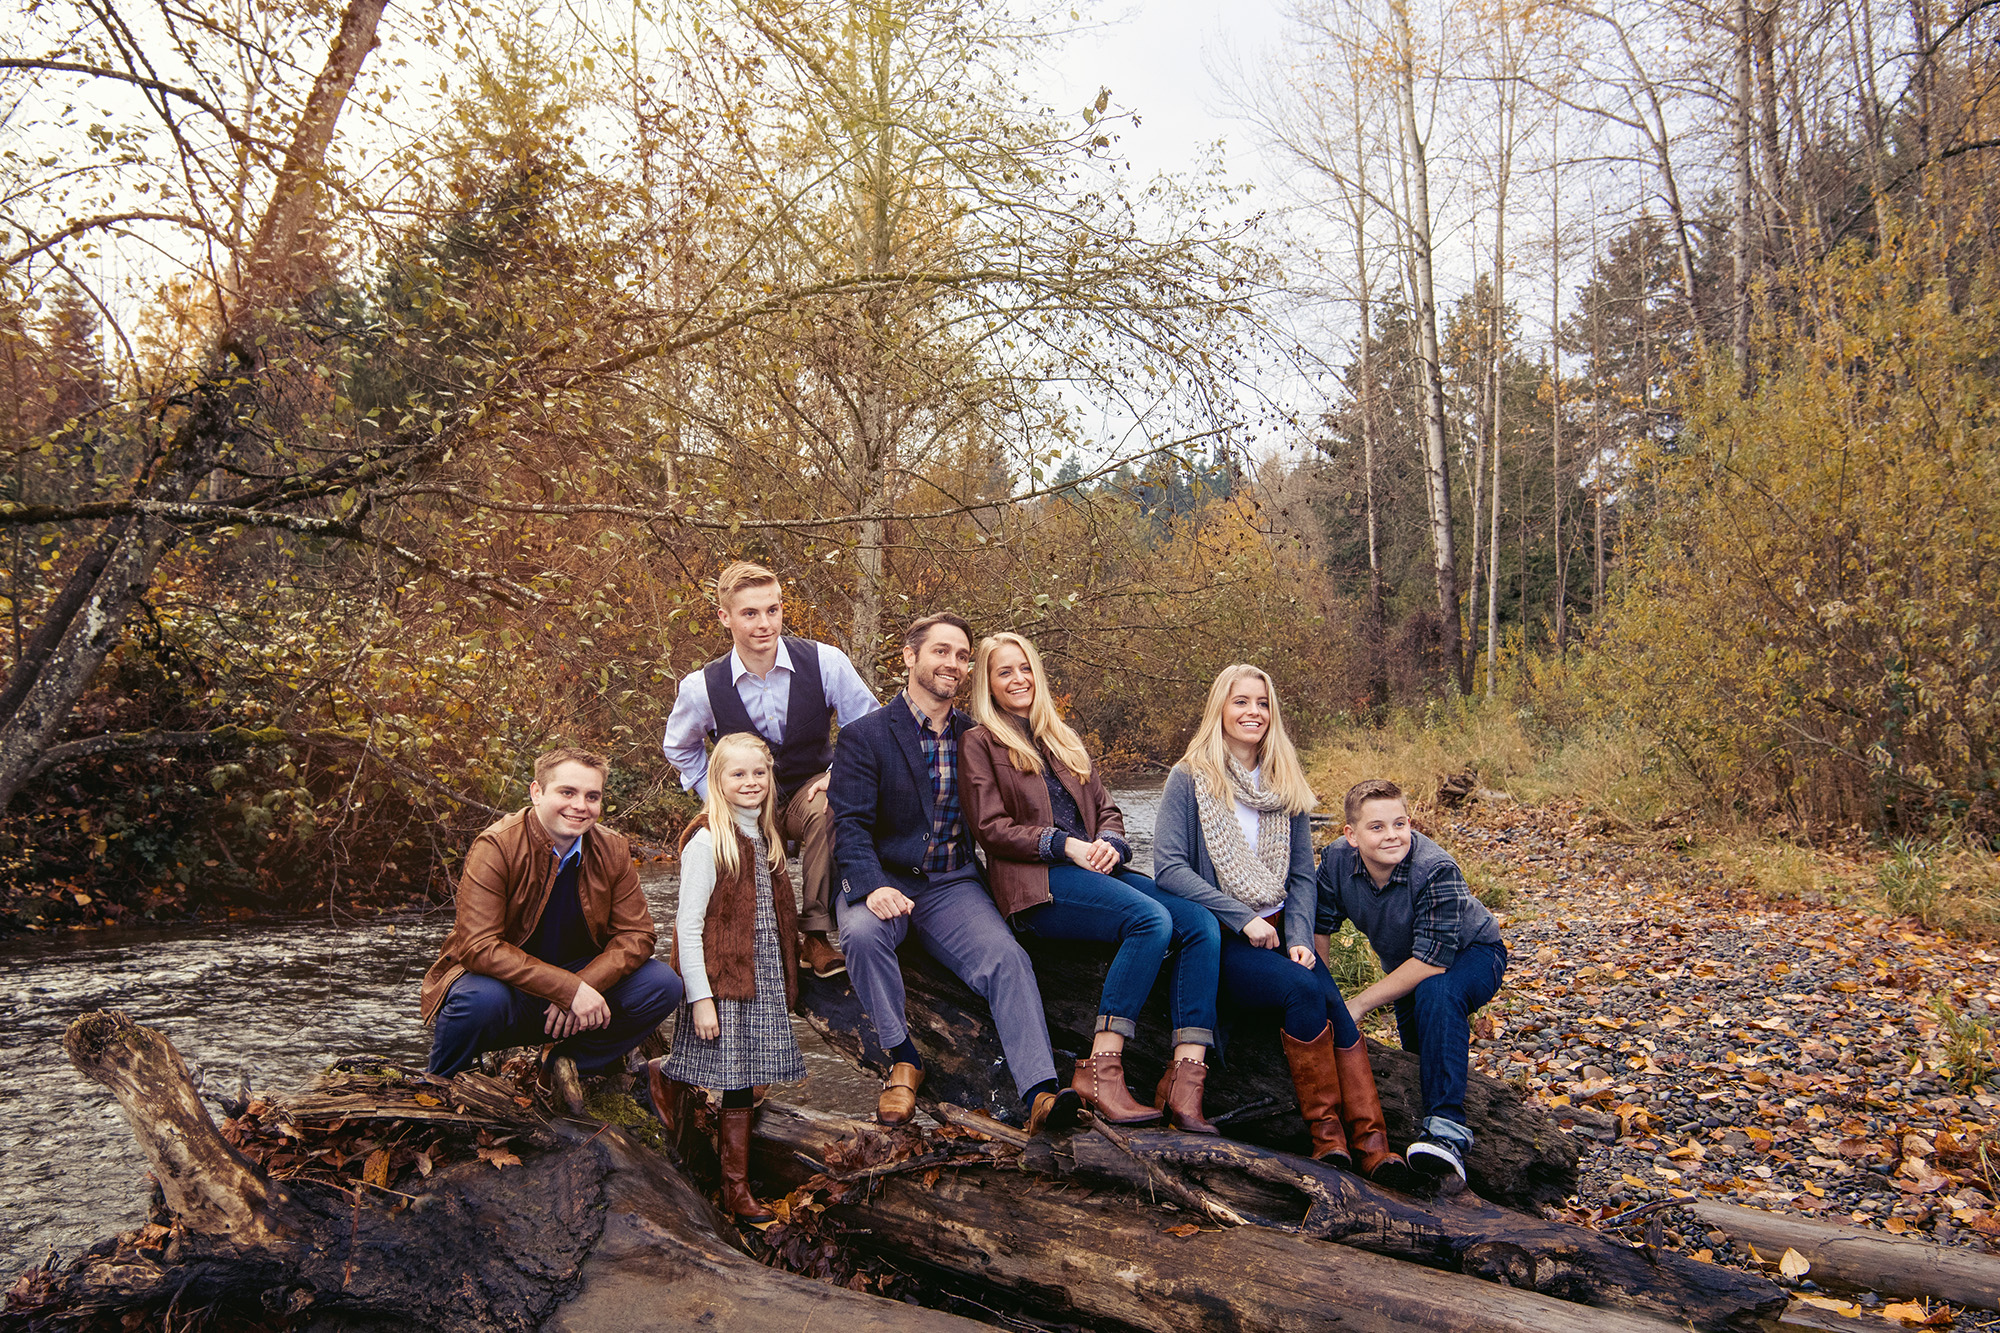 Amazing Fall Family Pictures at Studio B Portraits near Bellevue_Bean_web.jpg